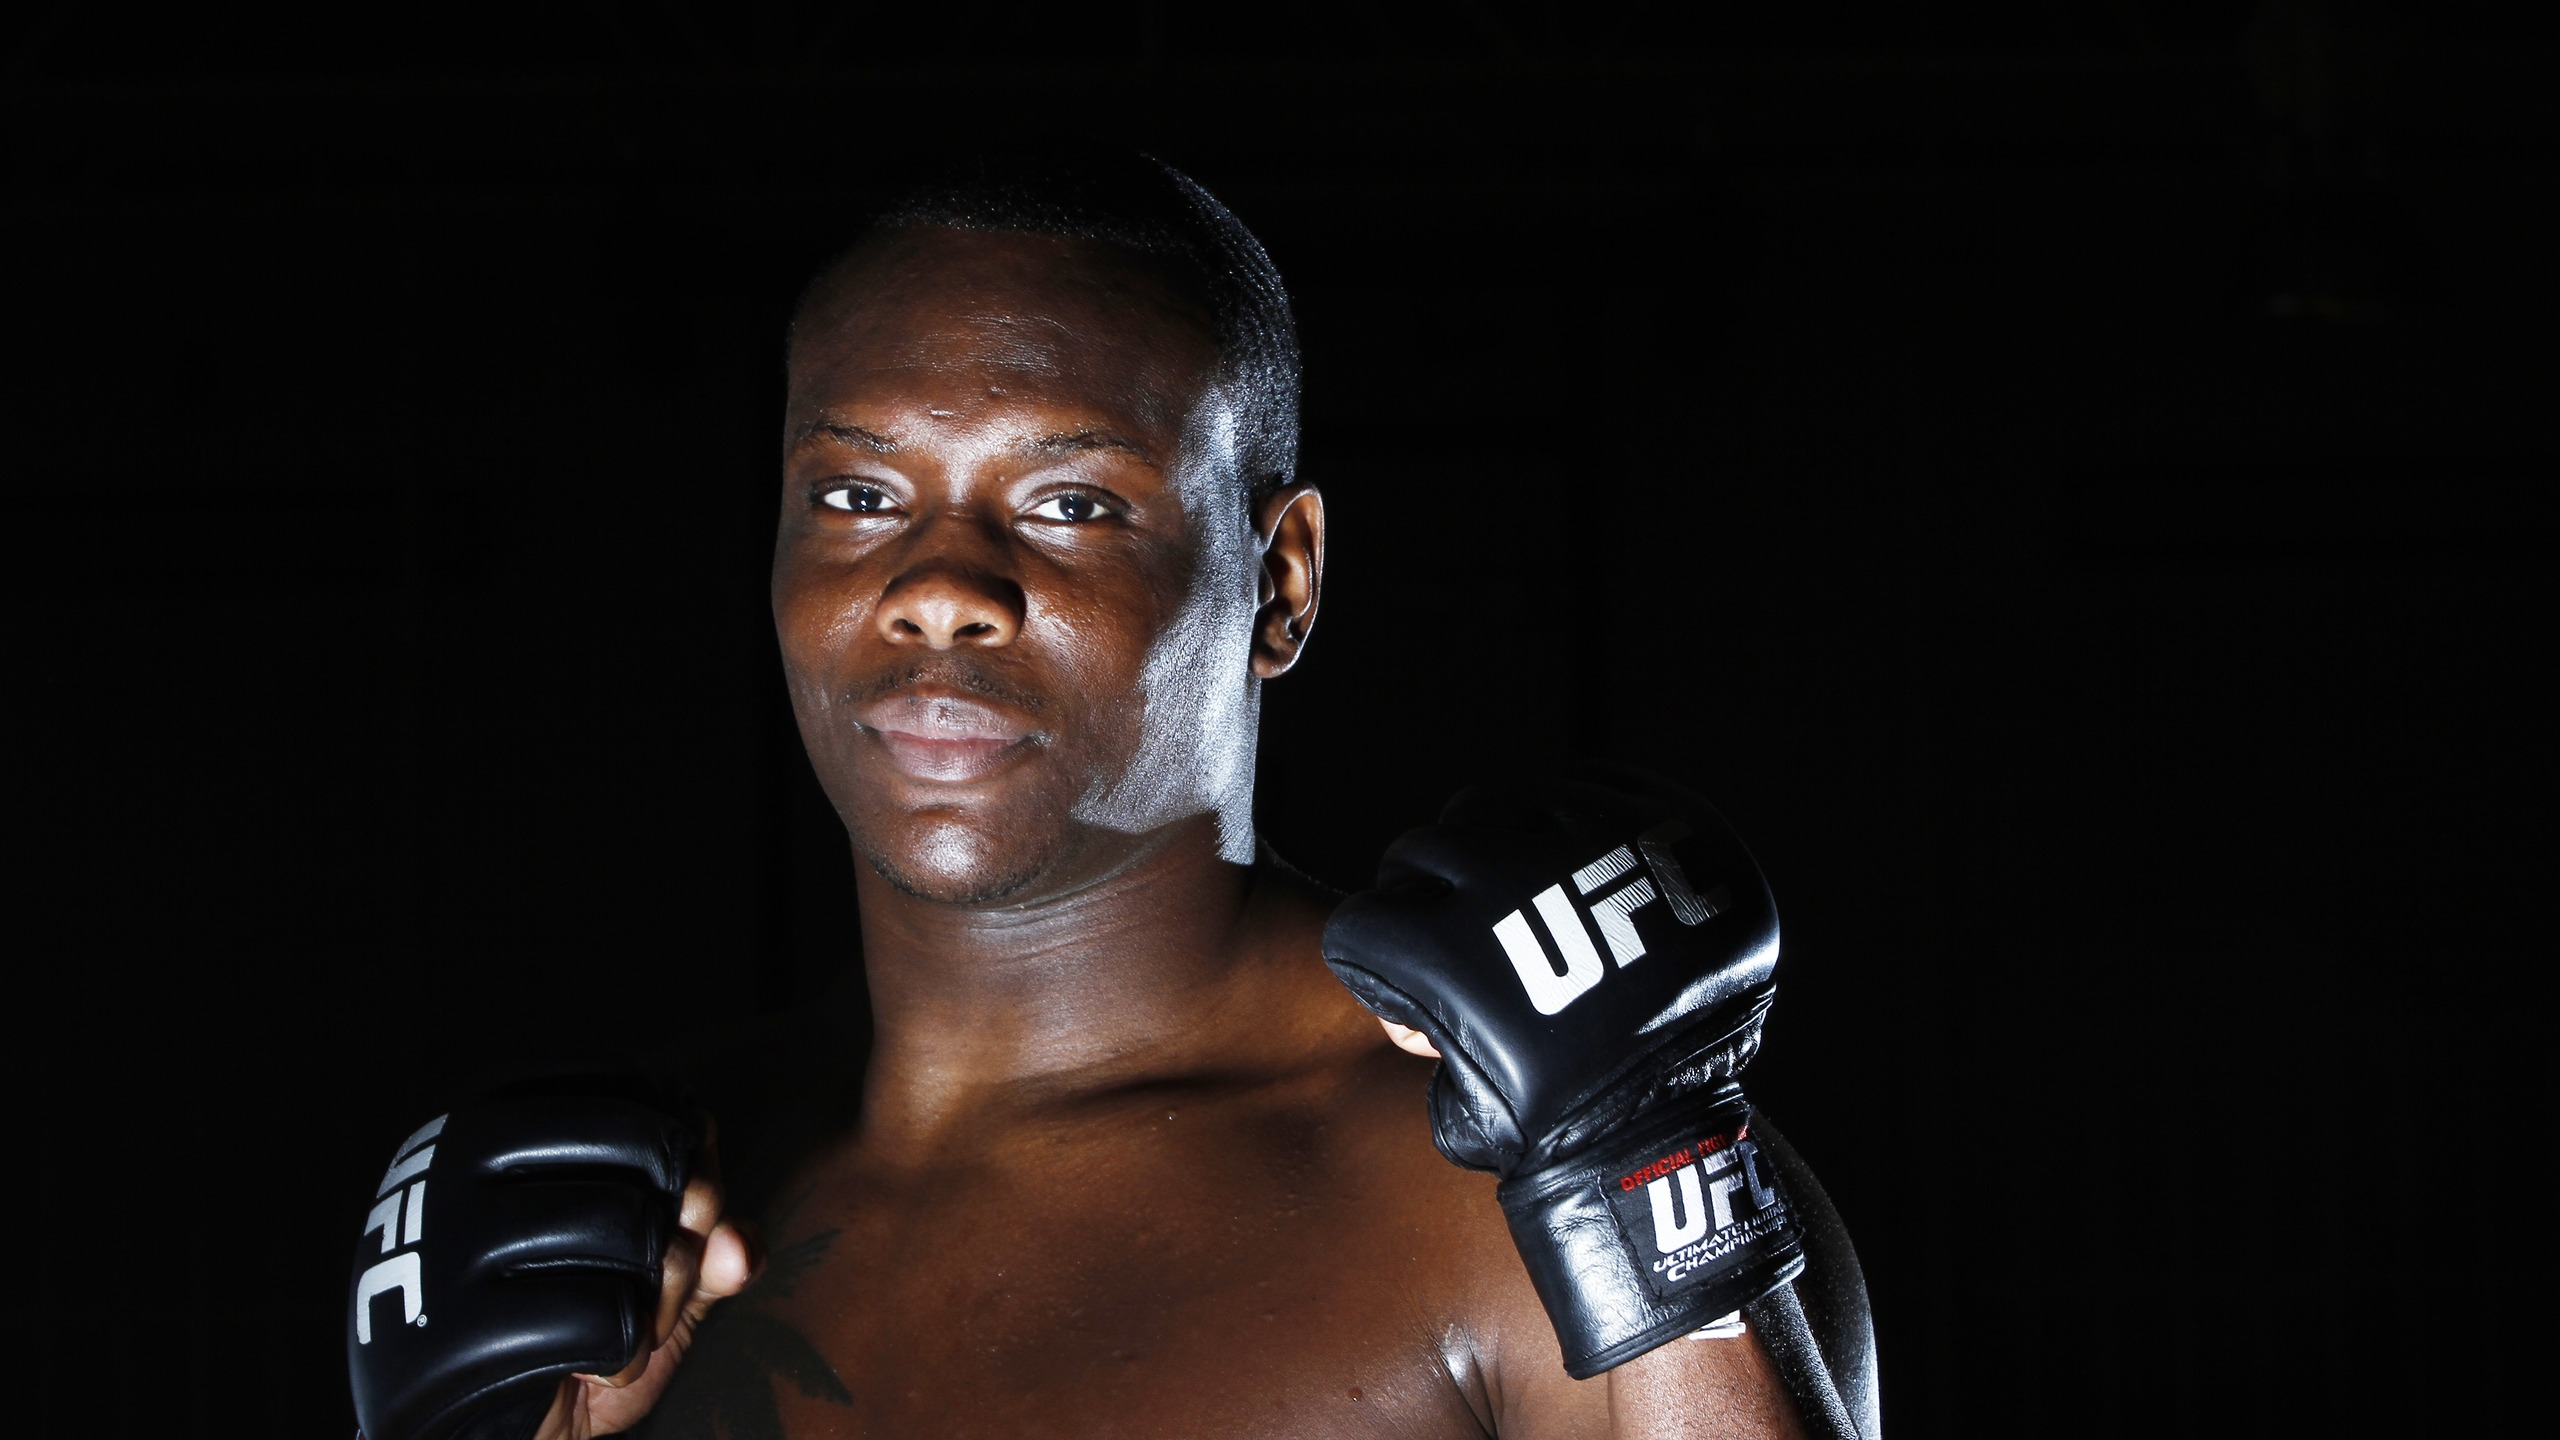 Download wallpaper 2560x1440 ovince saint preux ultimate fighting 2560x1440